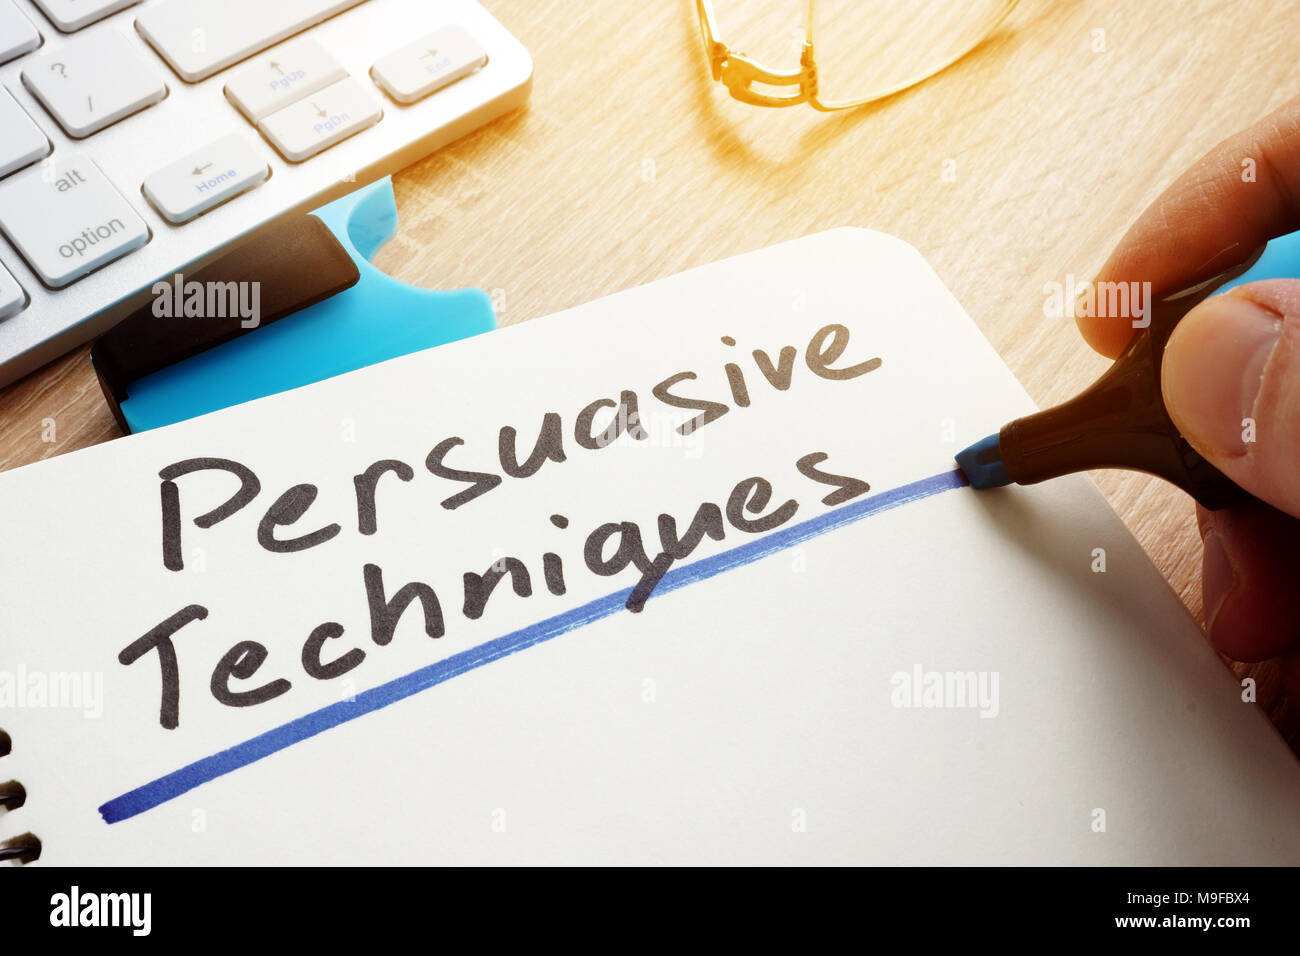 Man writing Persuasive Techniques in a note. - Stock Image